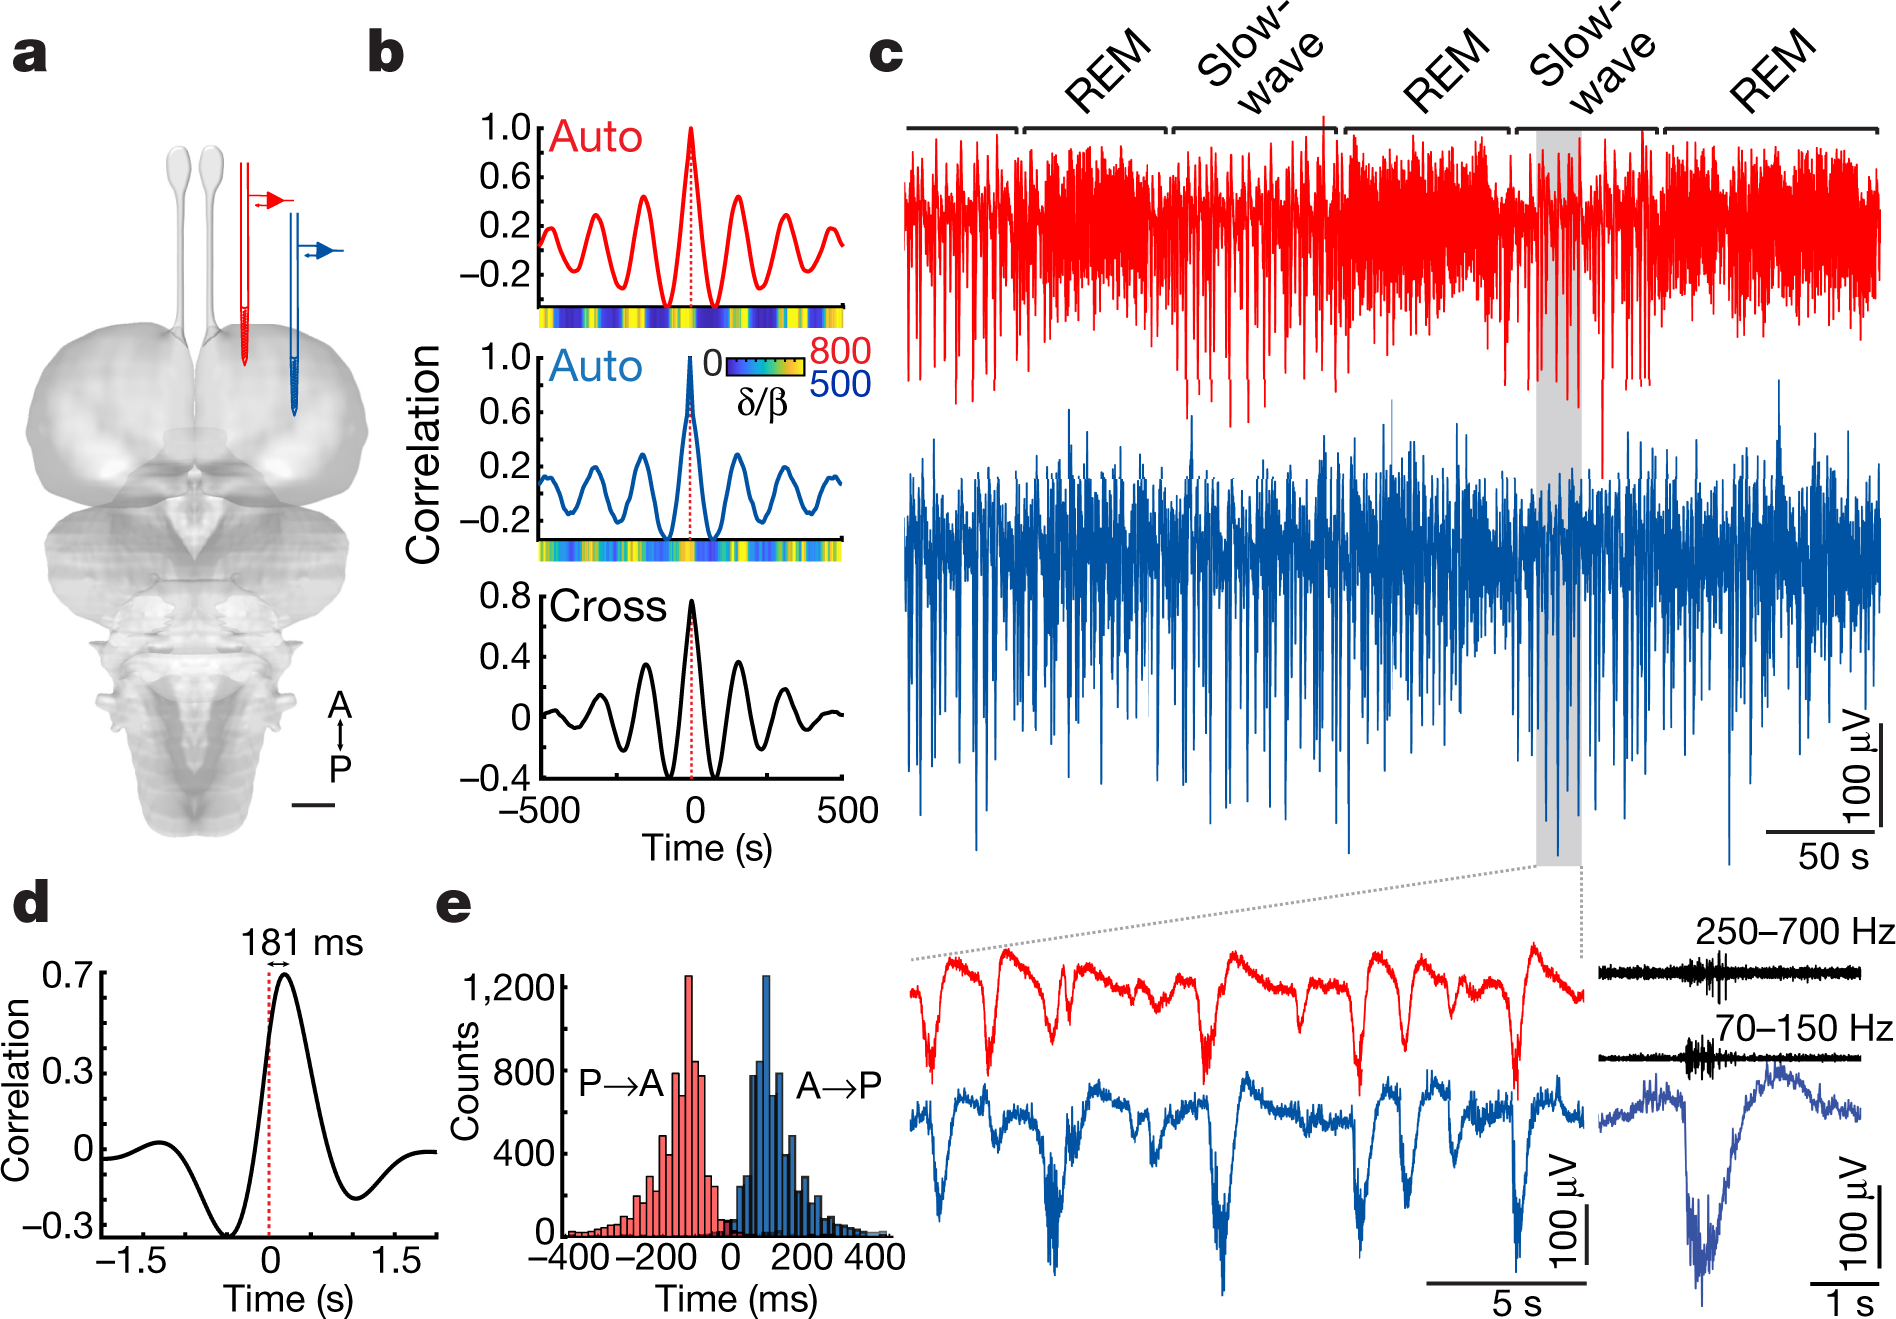 Comment Tracer Un Trait Horizontal Sur Un Mur a claustrum in reptiles and its role in slow-wave sleep | nature